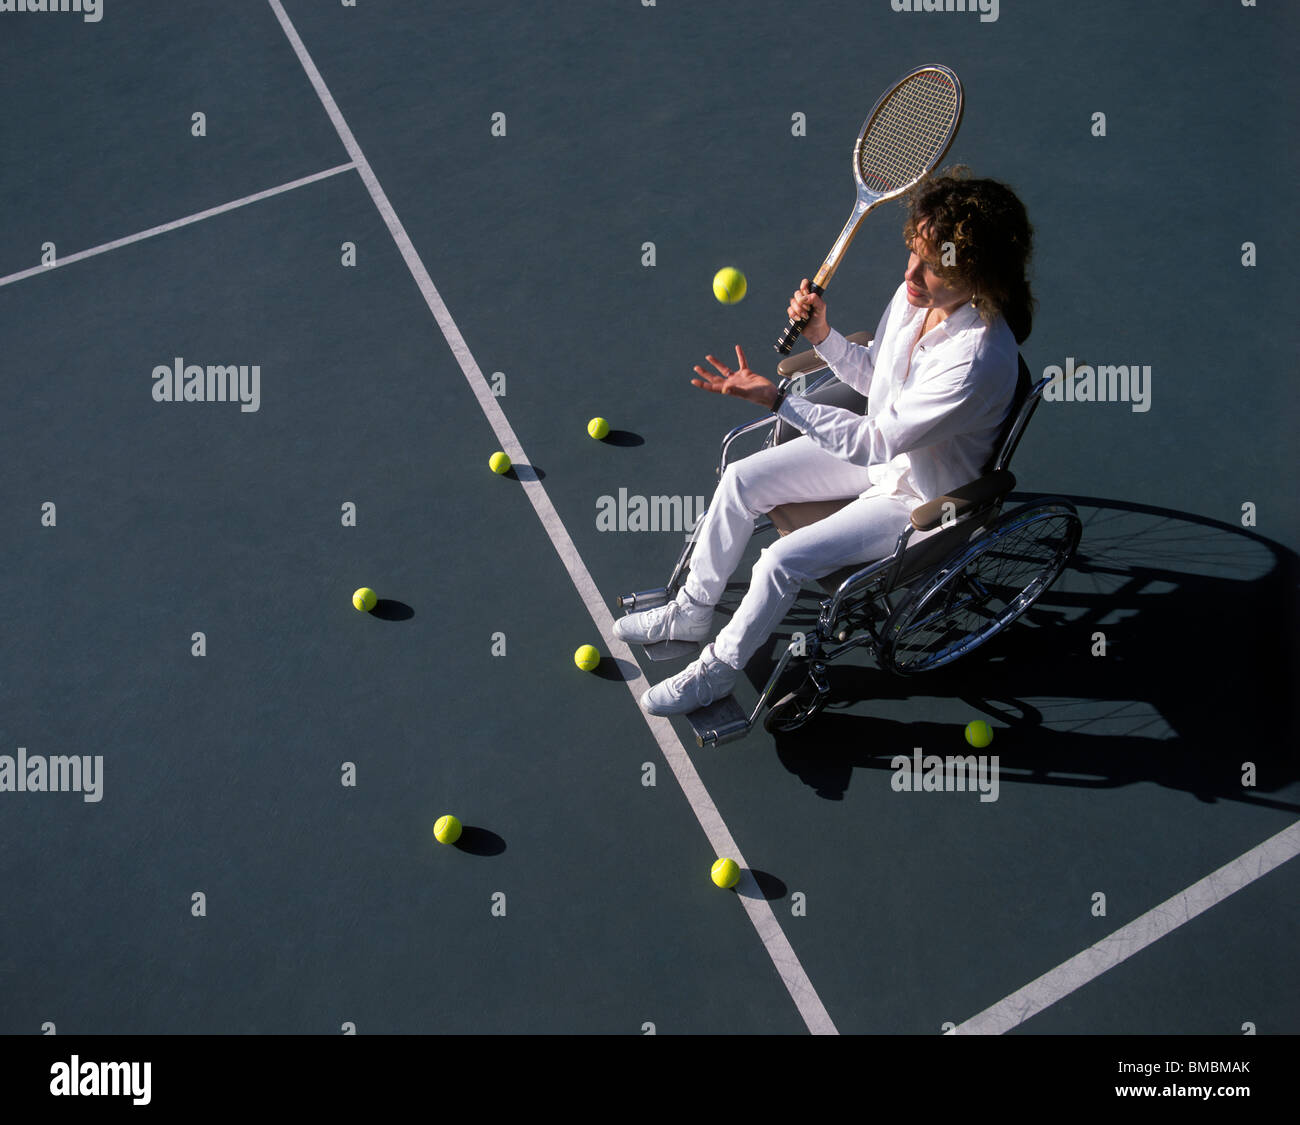 Woman on Tennis Court in Wheelchair - Stock Image